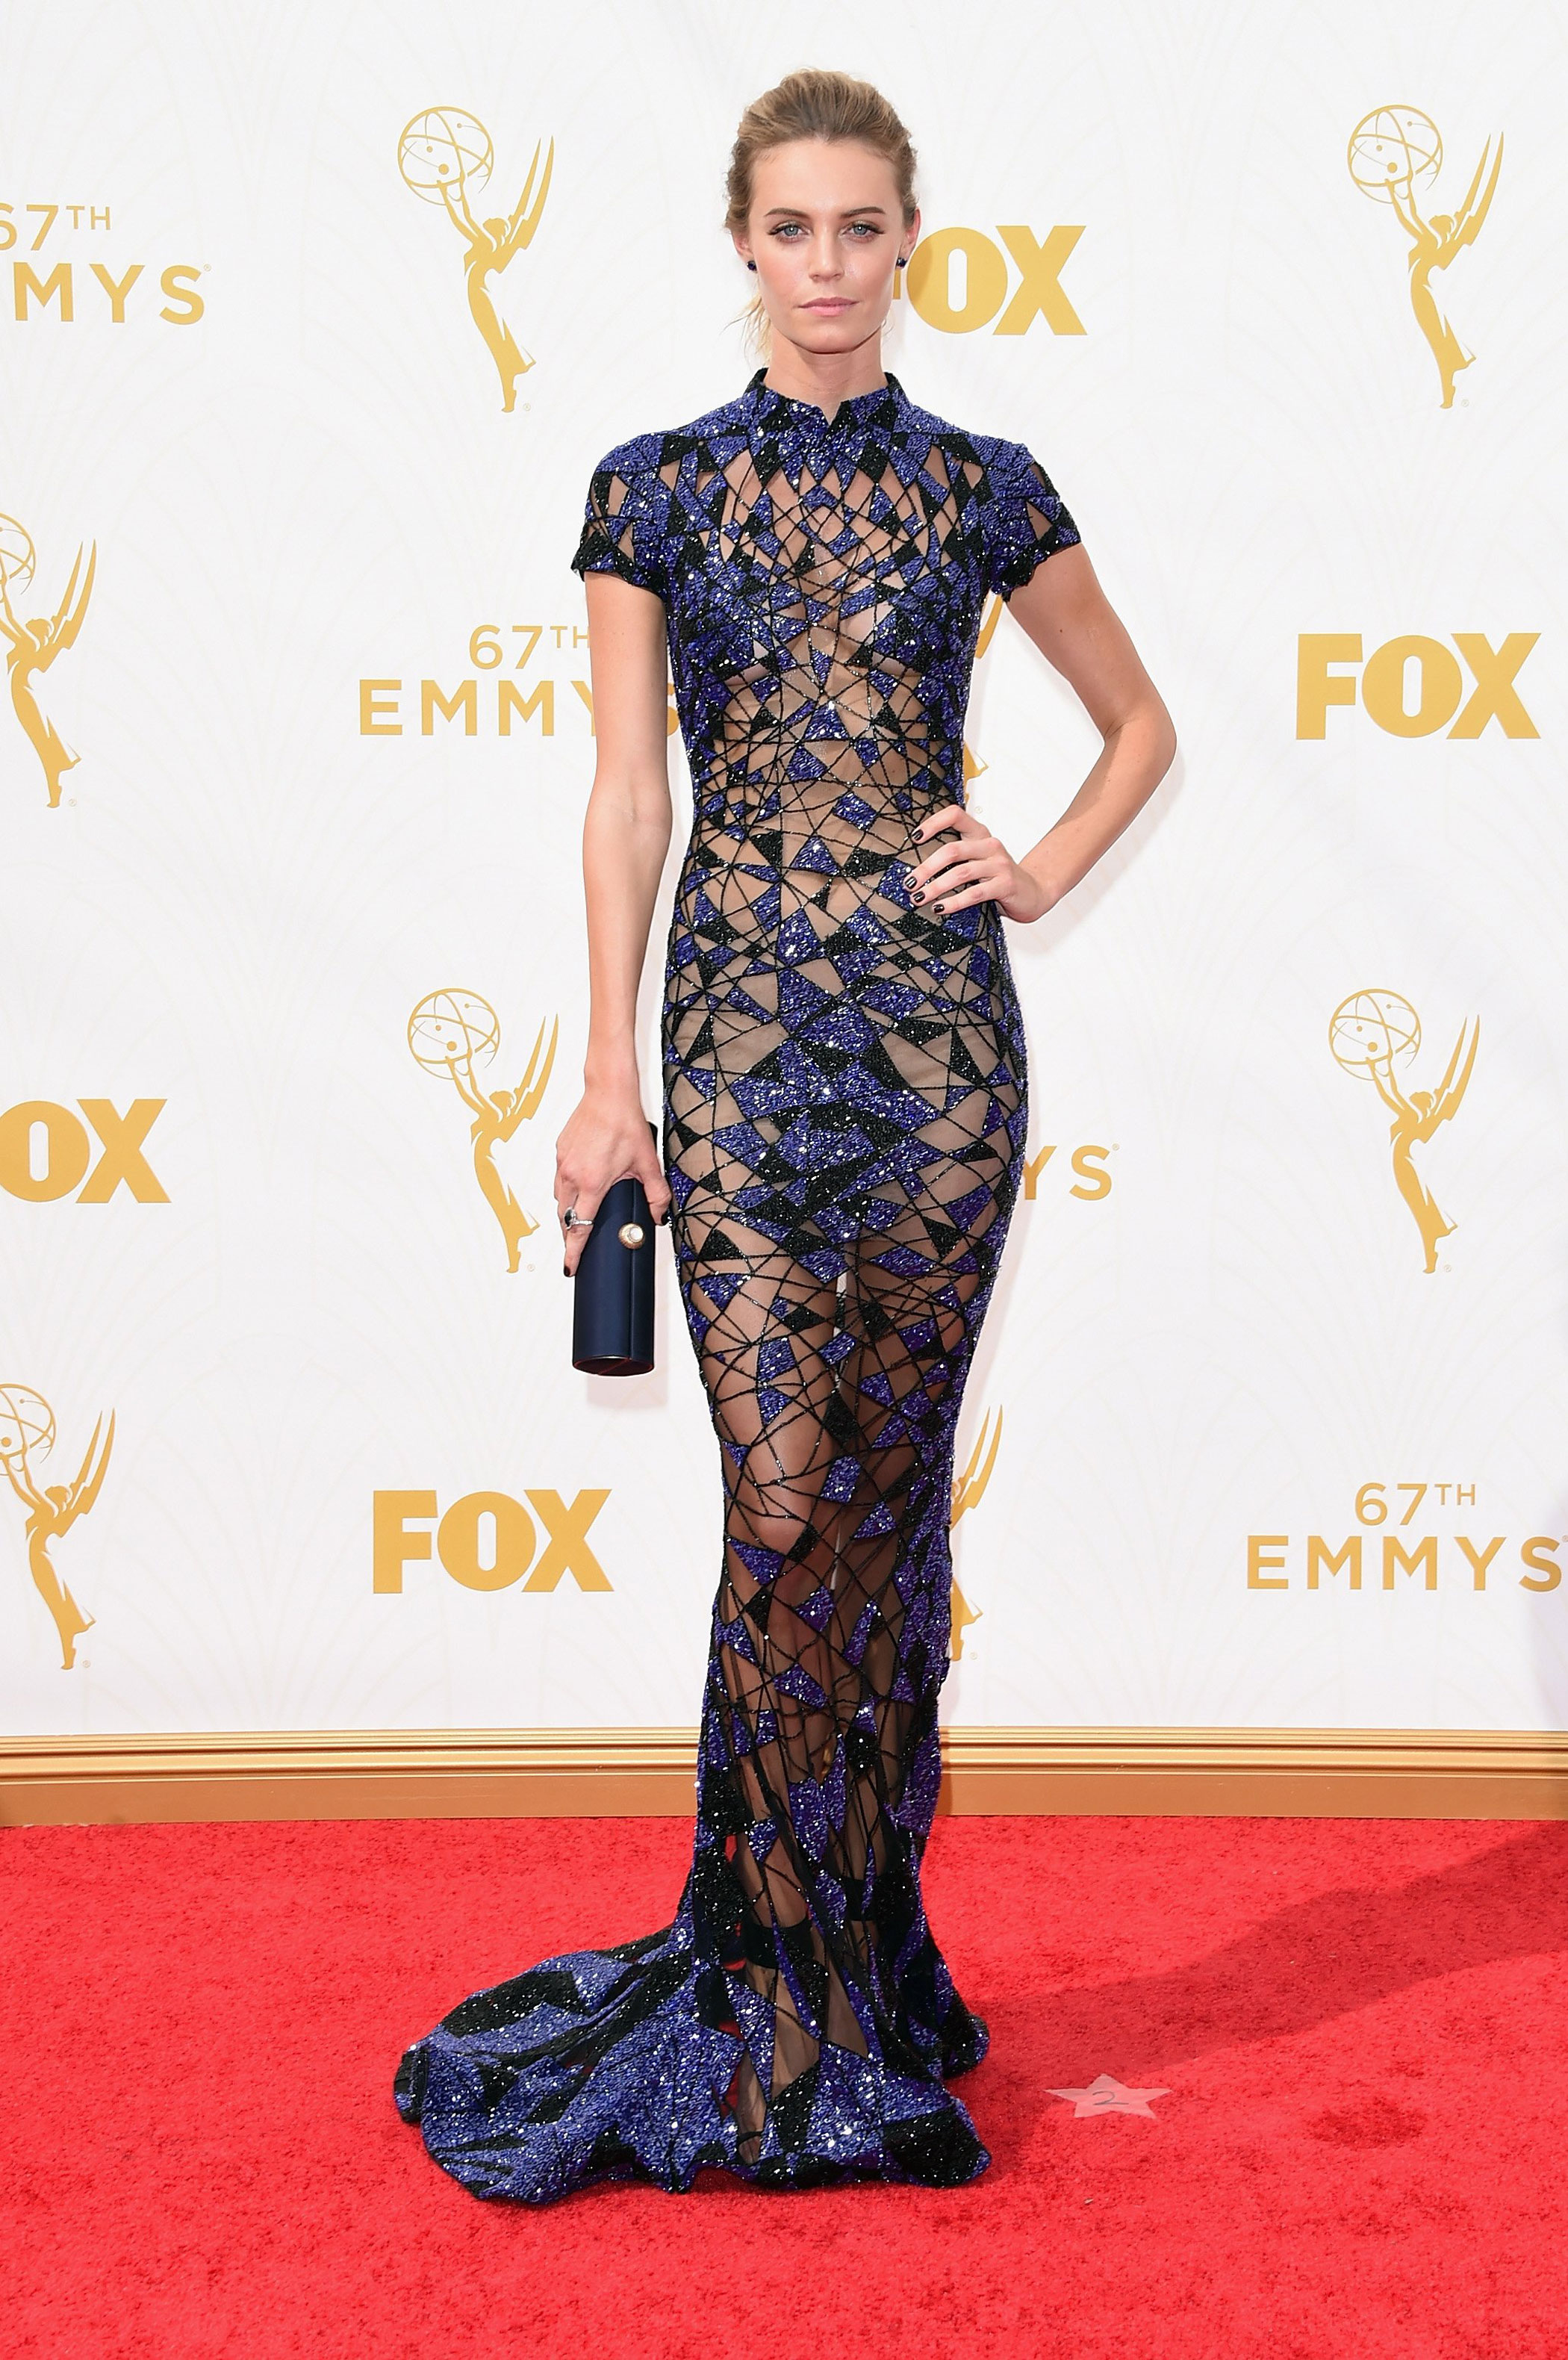 Christine Marzano at the 67th Emmy Award on Sept. 20, 2015 in Los Angeles.